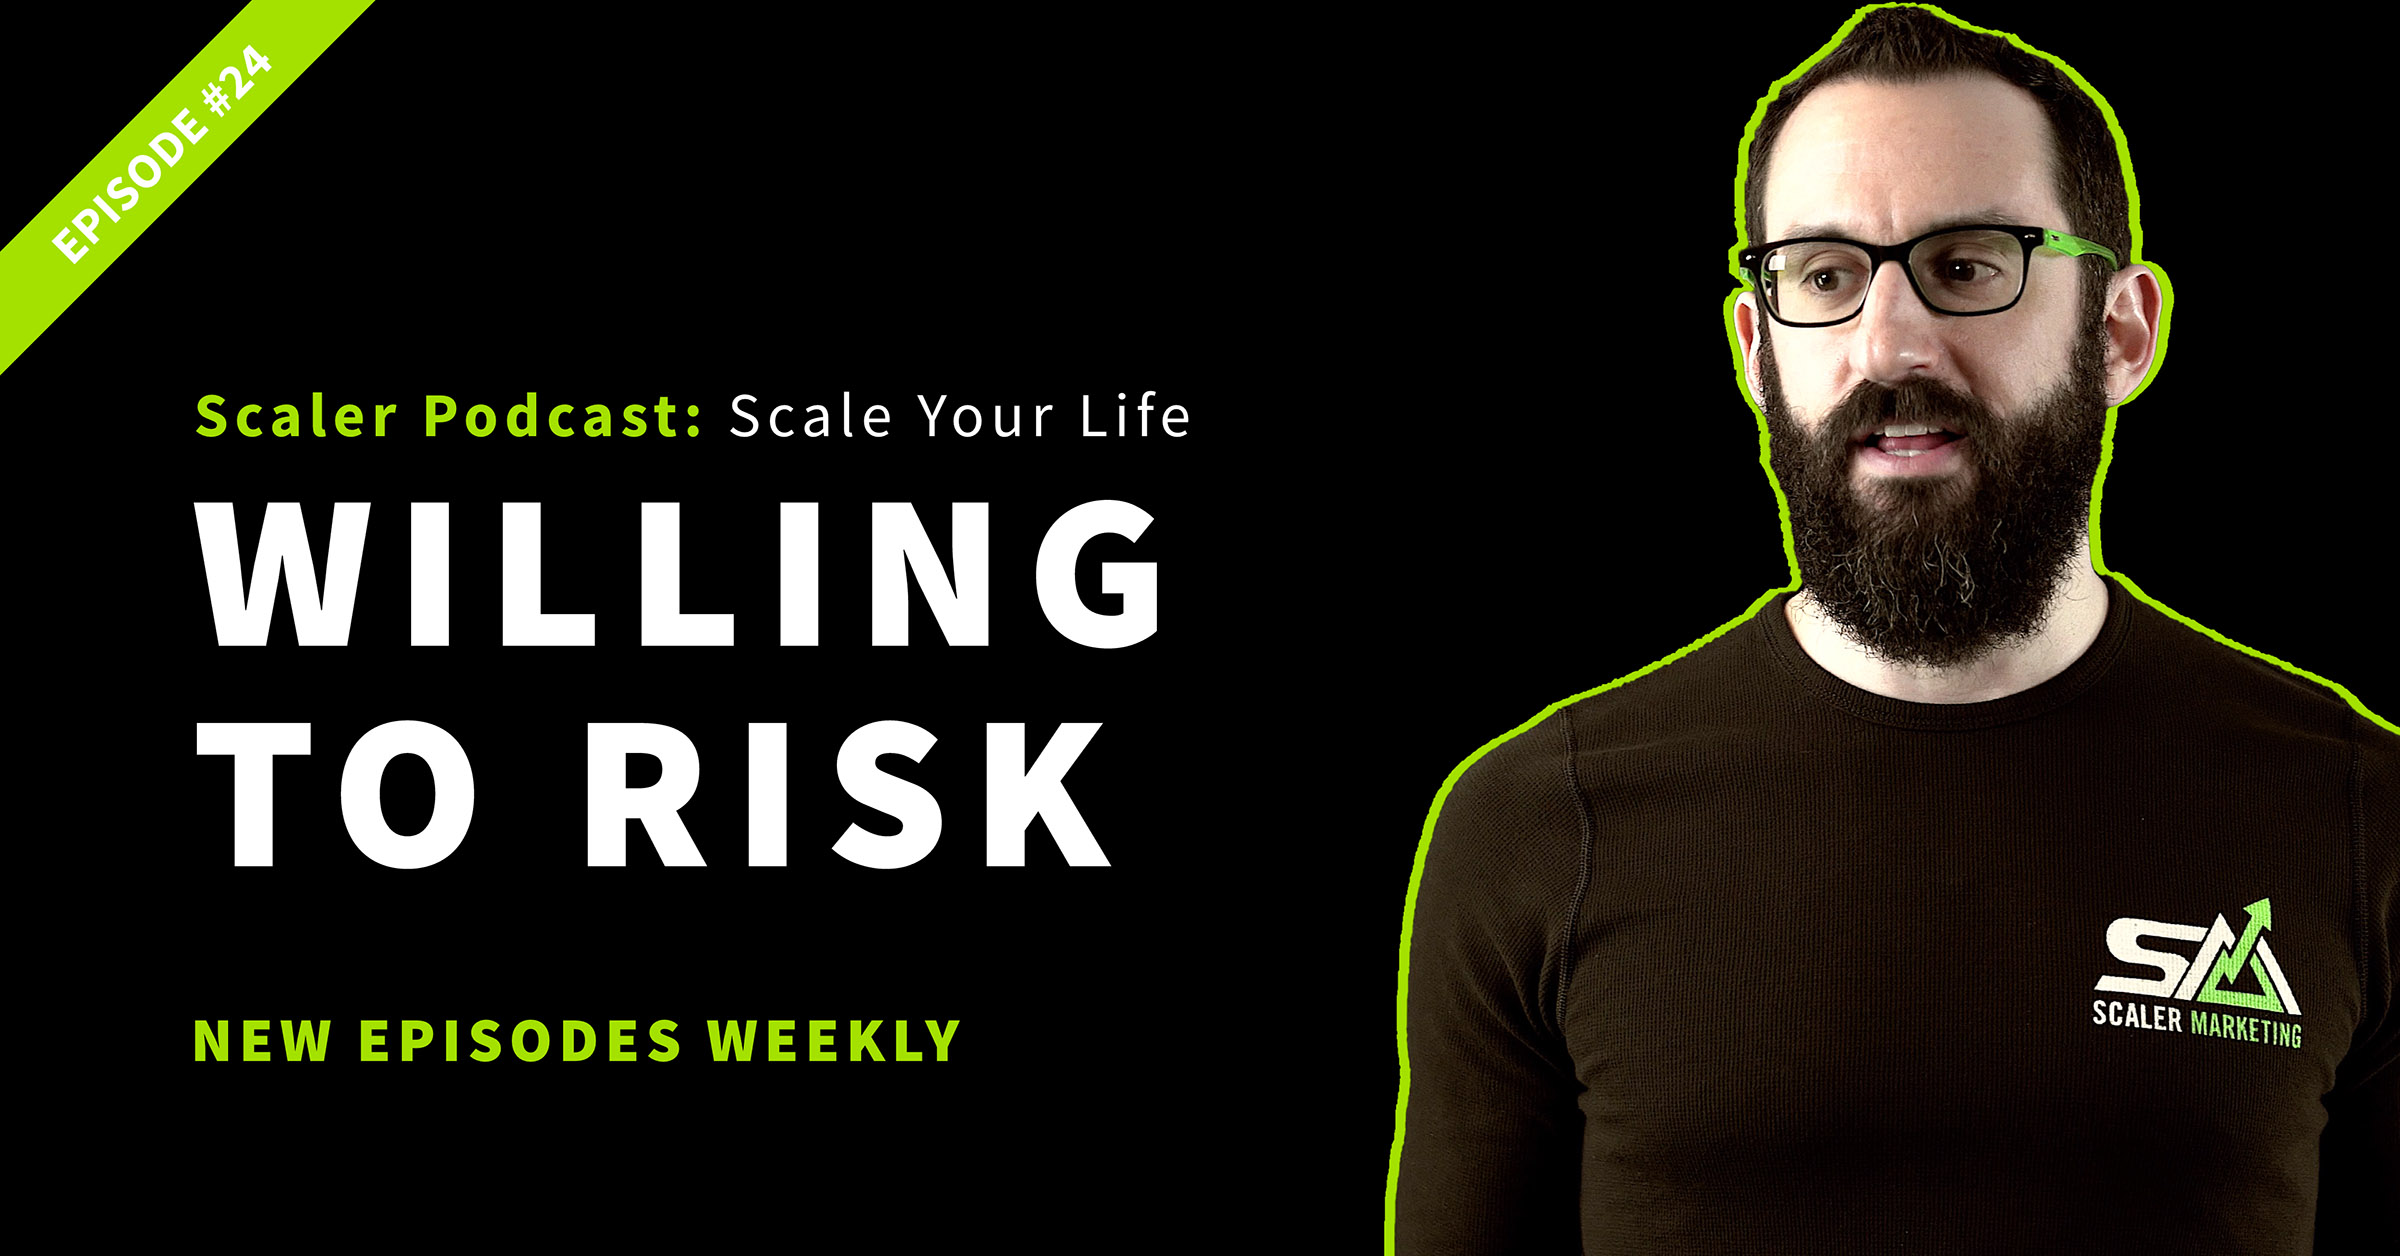 Episode 24 - Willing to Risk